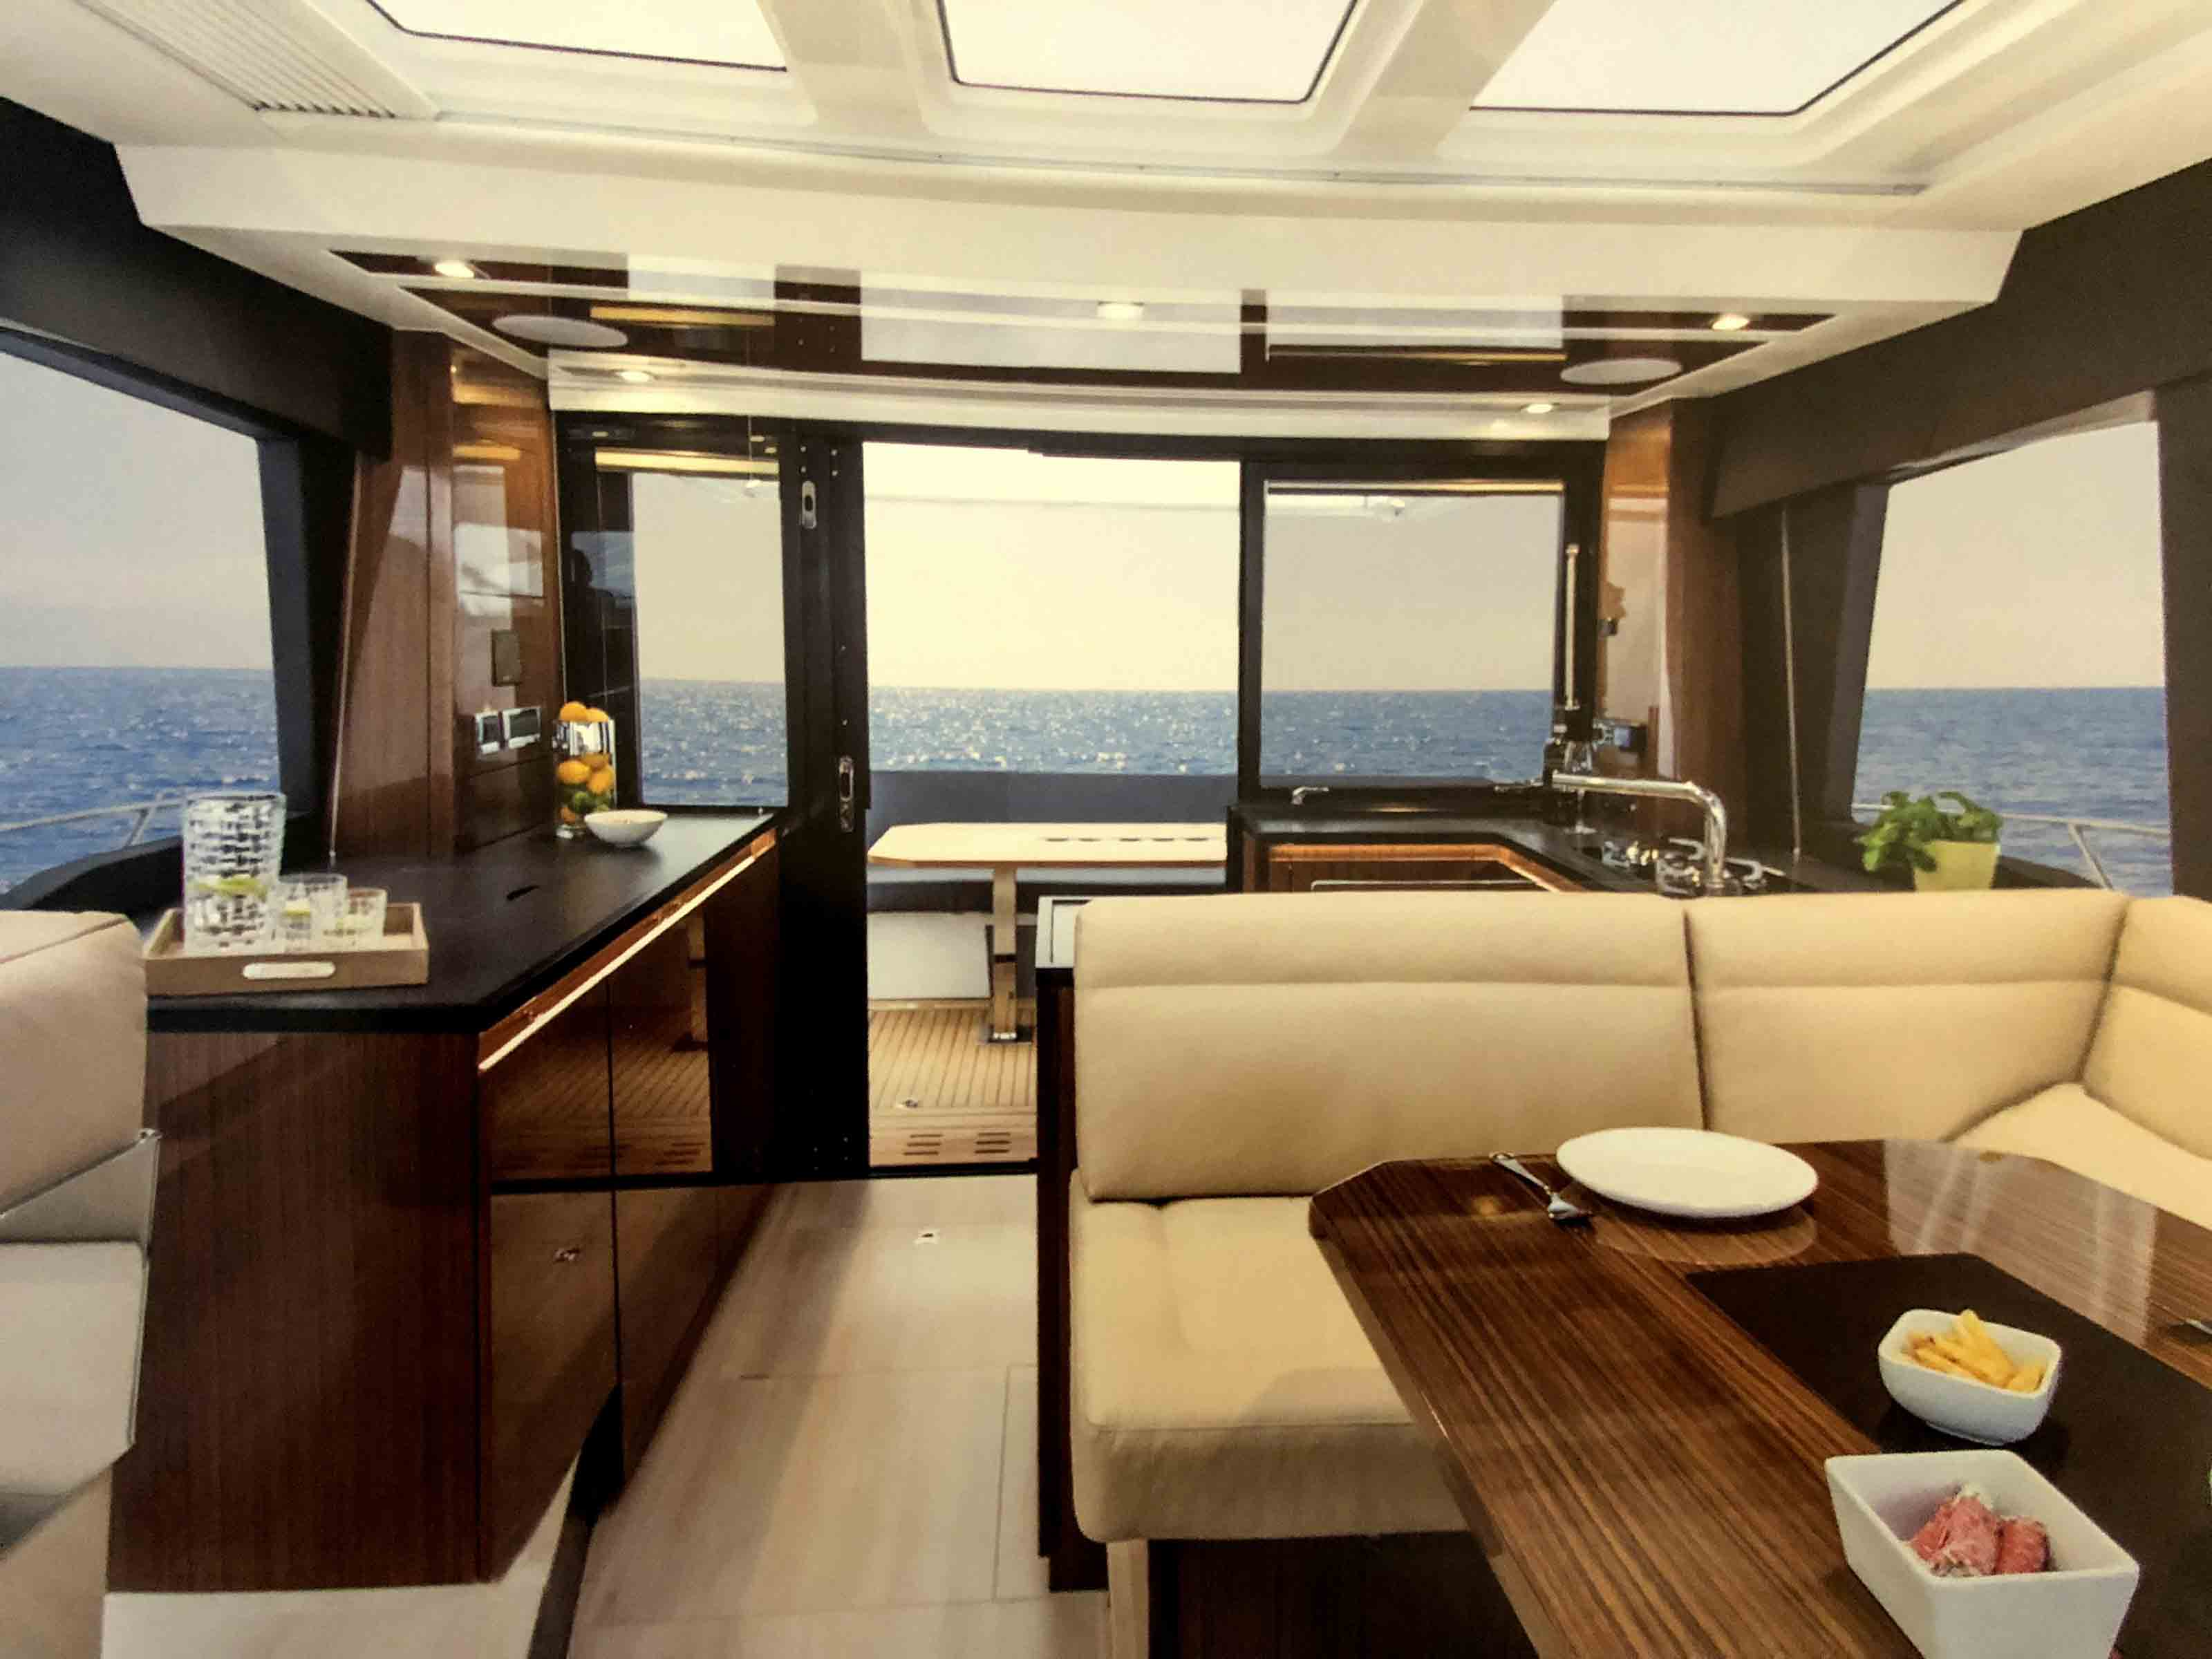 floor ot ceiling glass on board the yacht